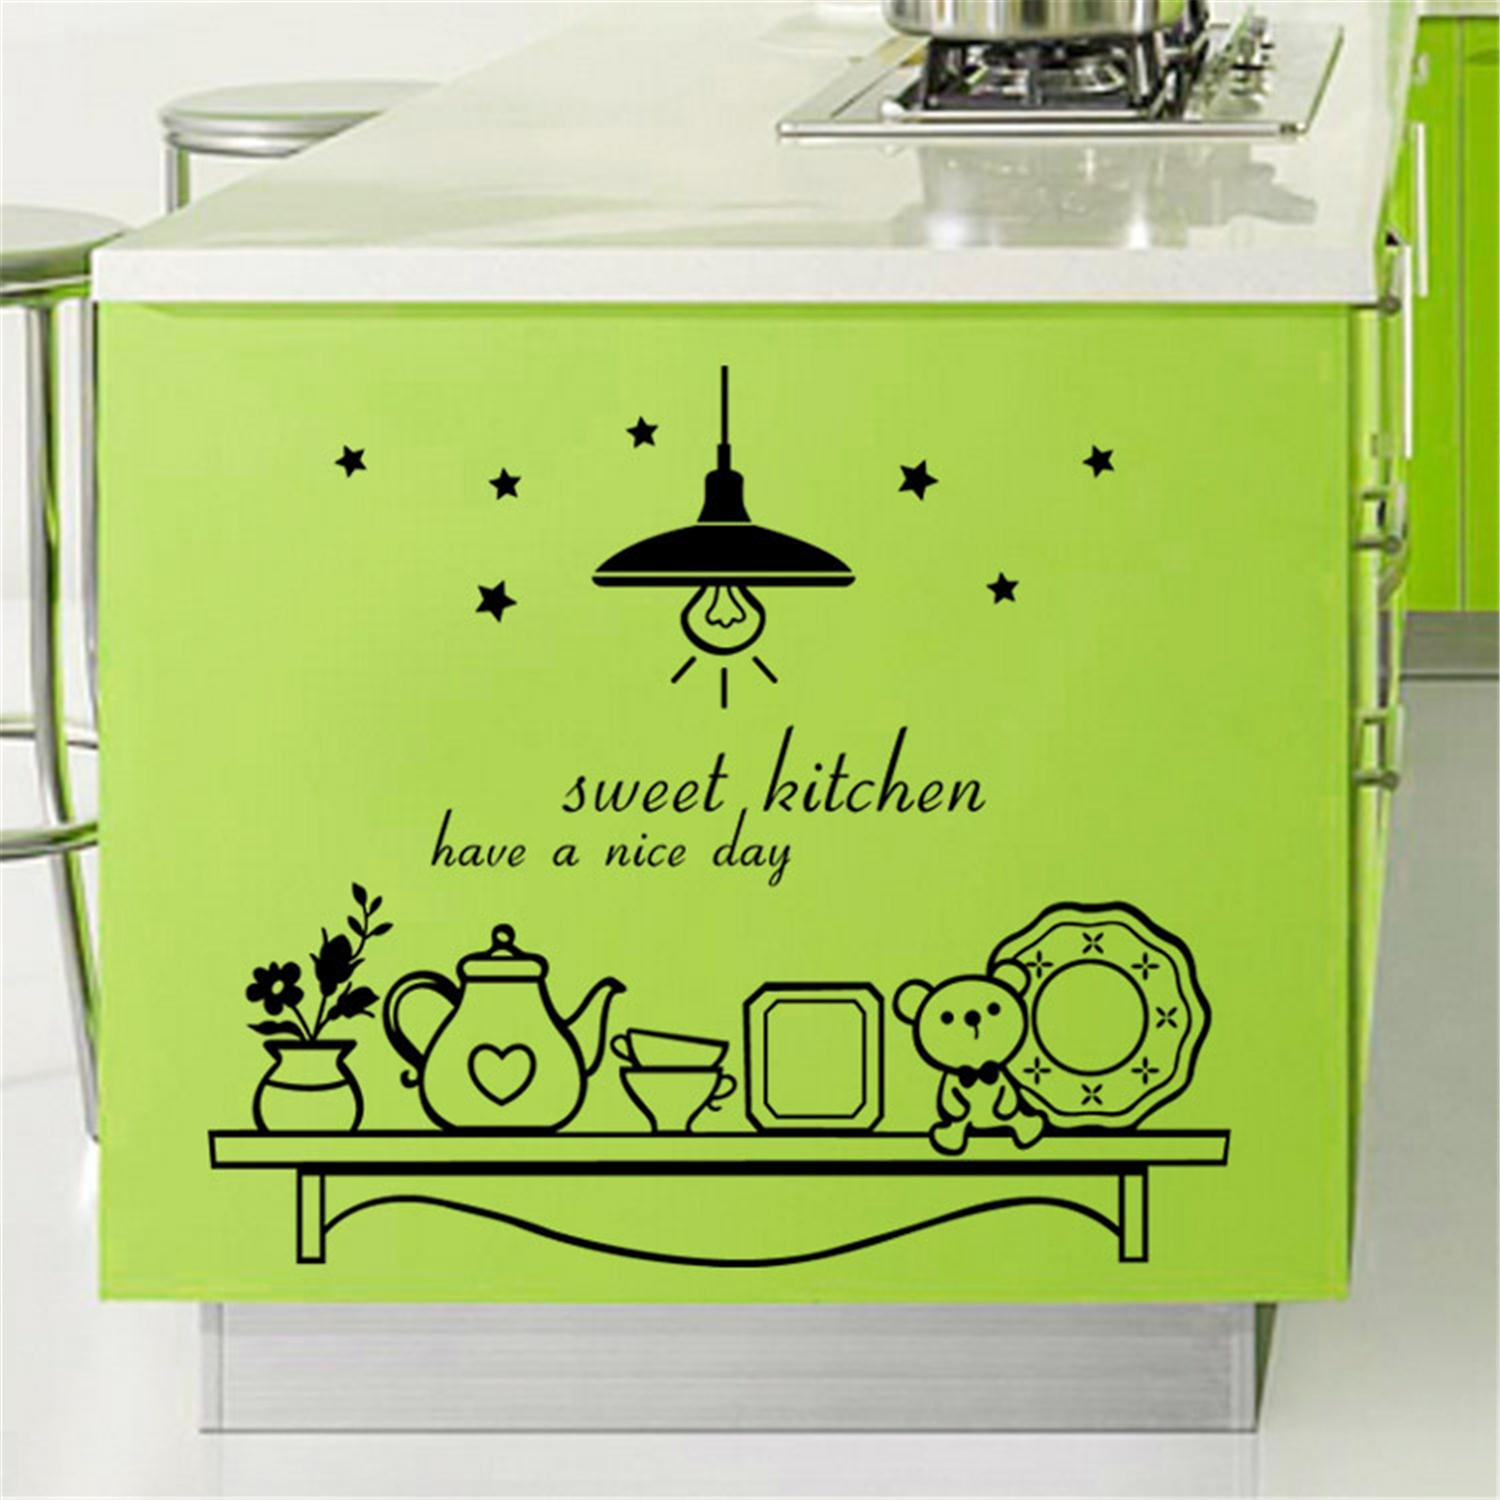 Decorative Wall Paper Art Sticker Picture More Detailed Picture